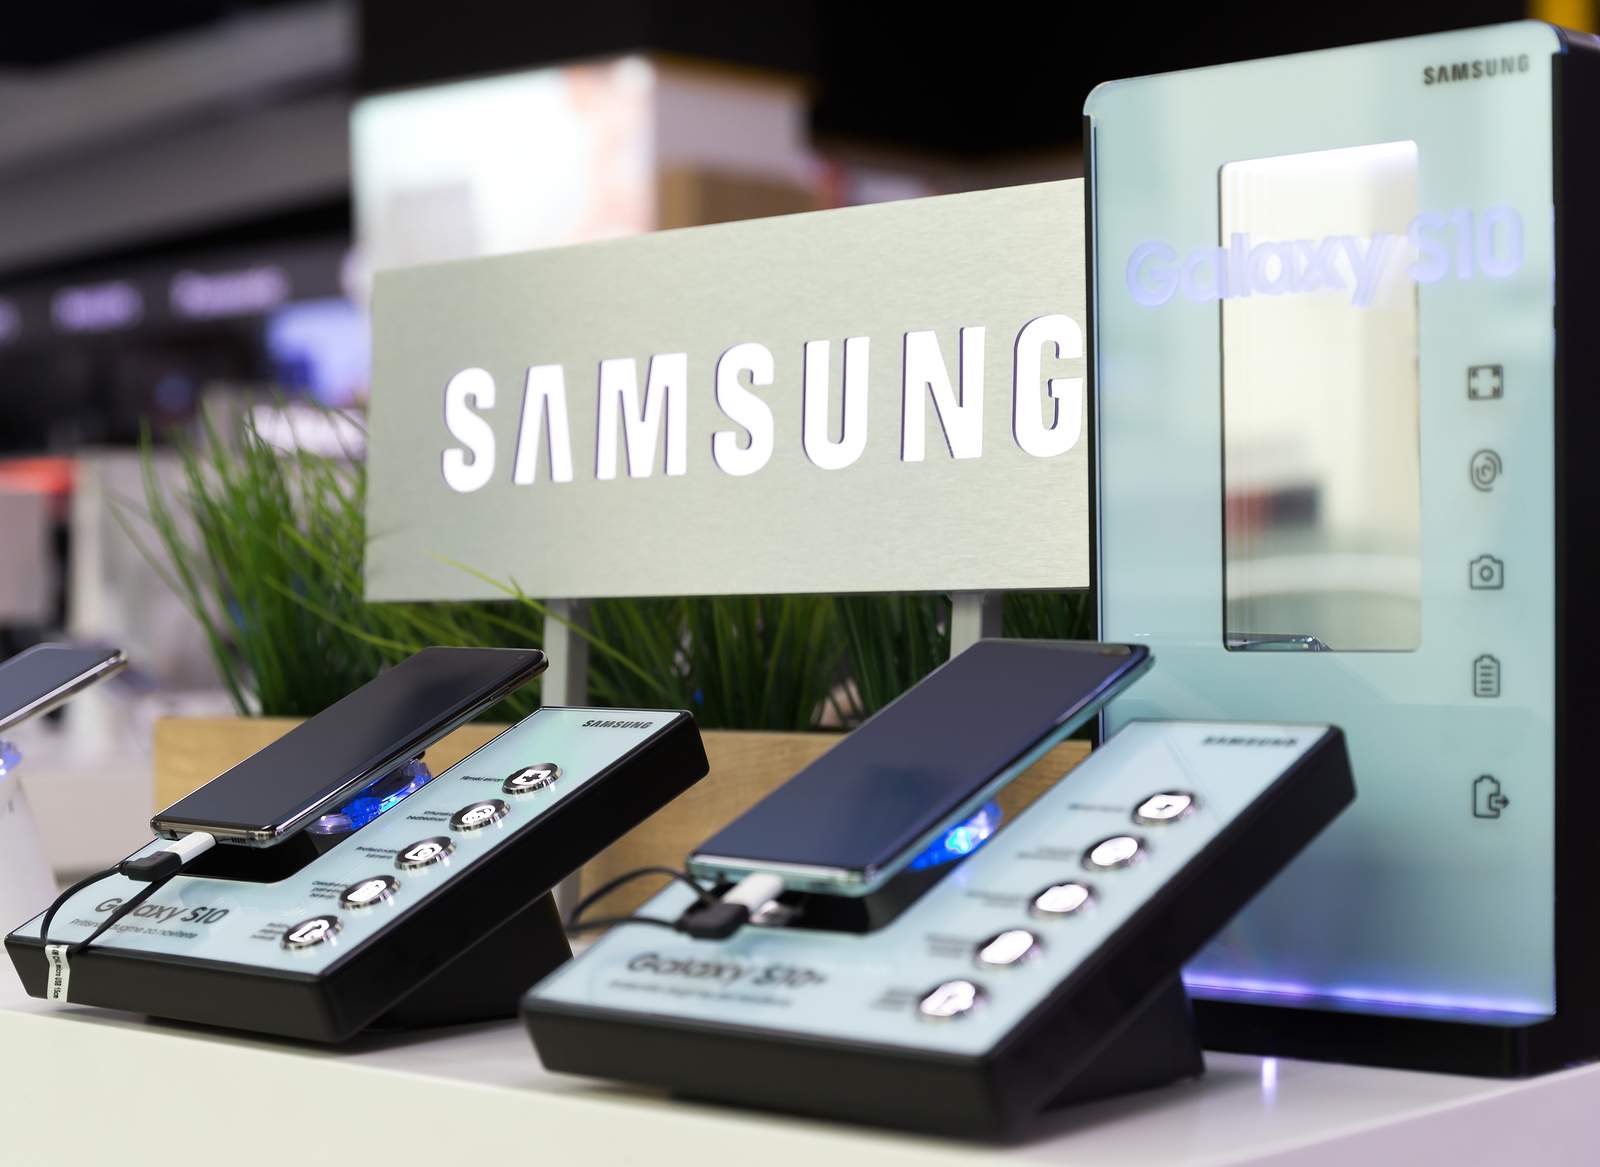 Samsung's New Galaxy S10 Features Built-In Crypto Wallet